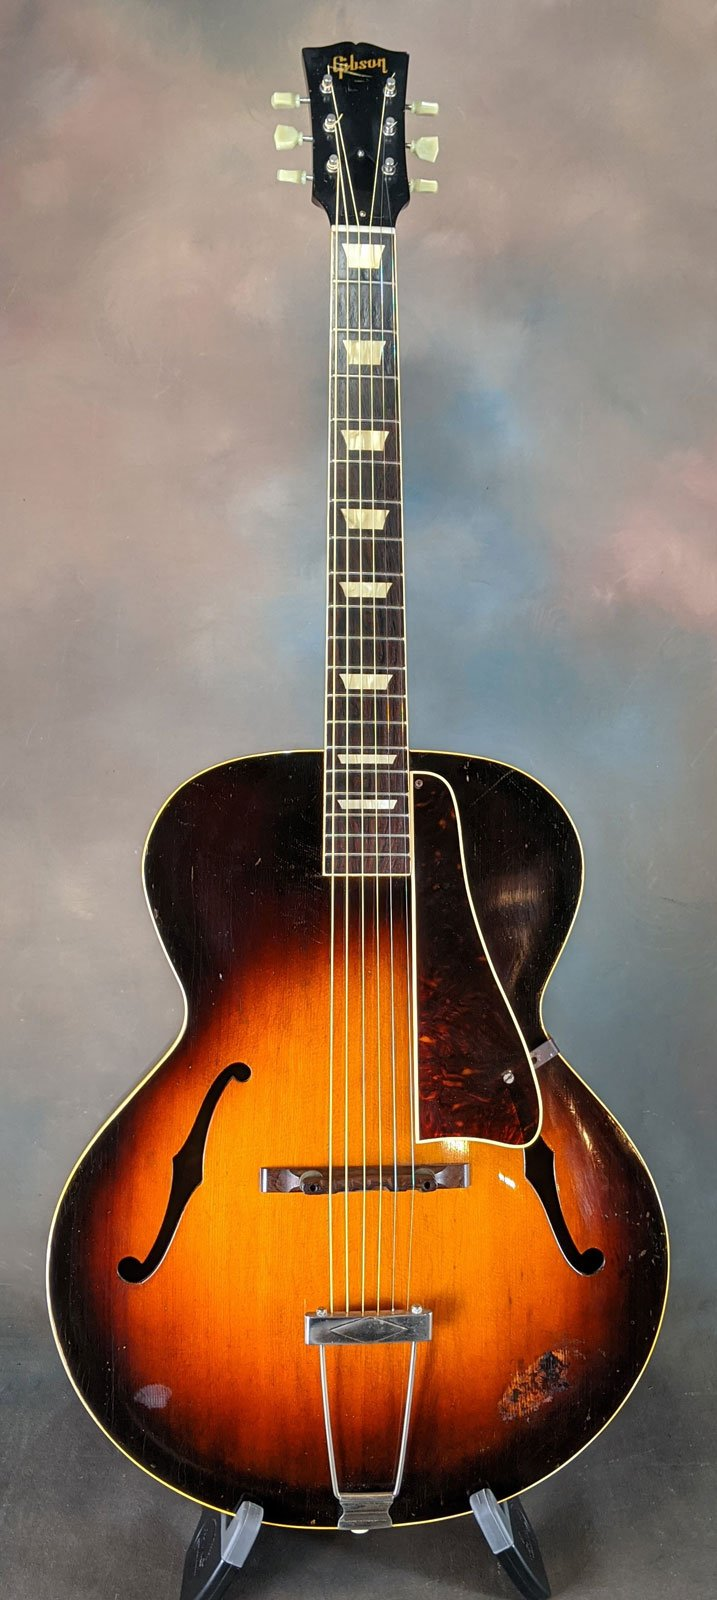 Late 40s Gibson L50 Archtop